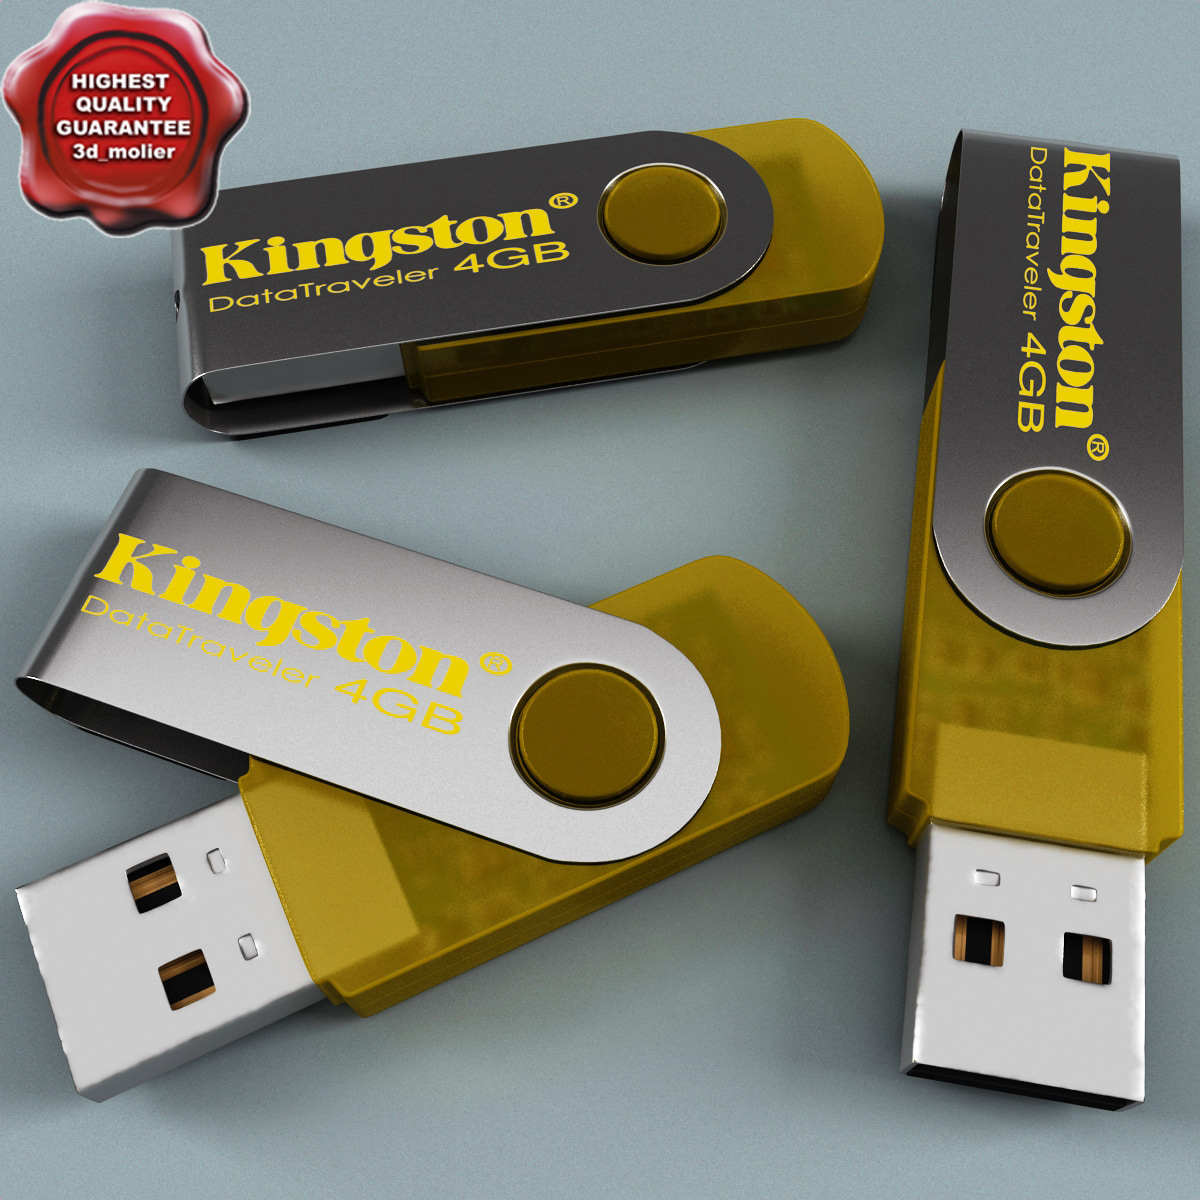 Kingston_Flash_4Gb_00.jpg